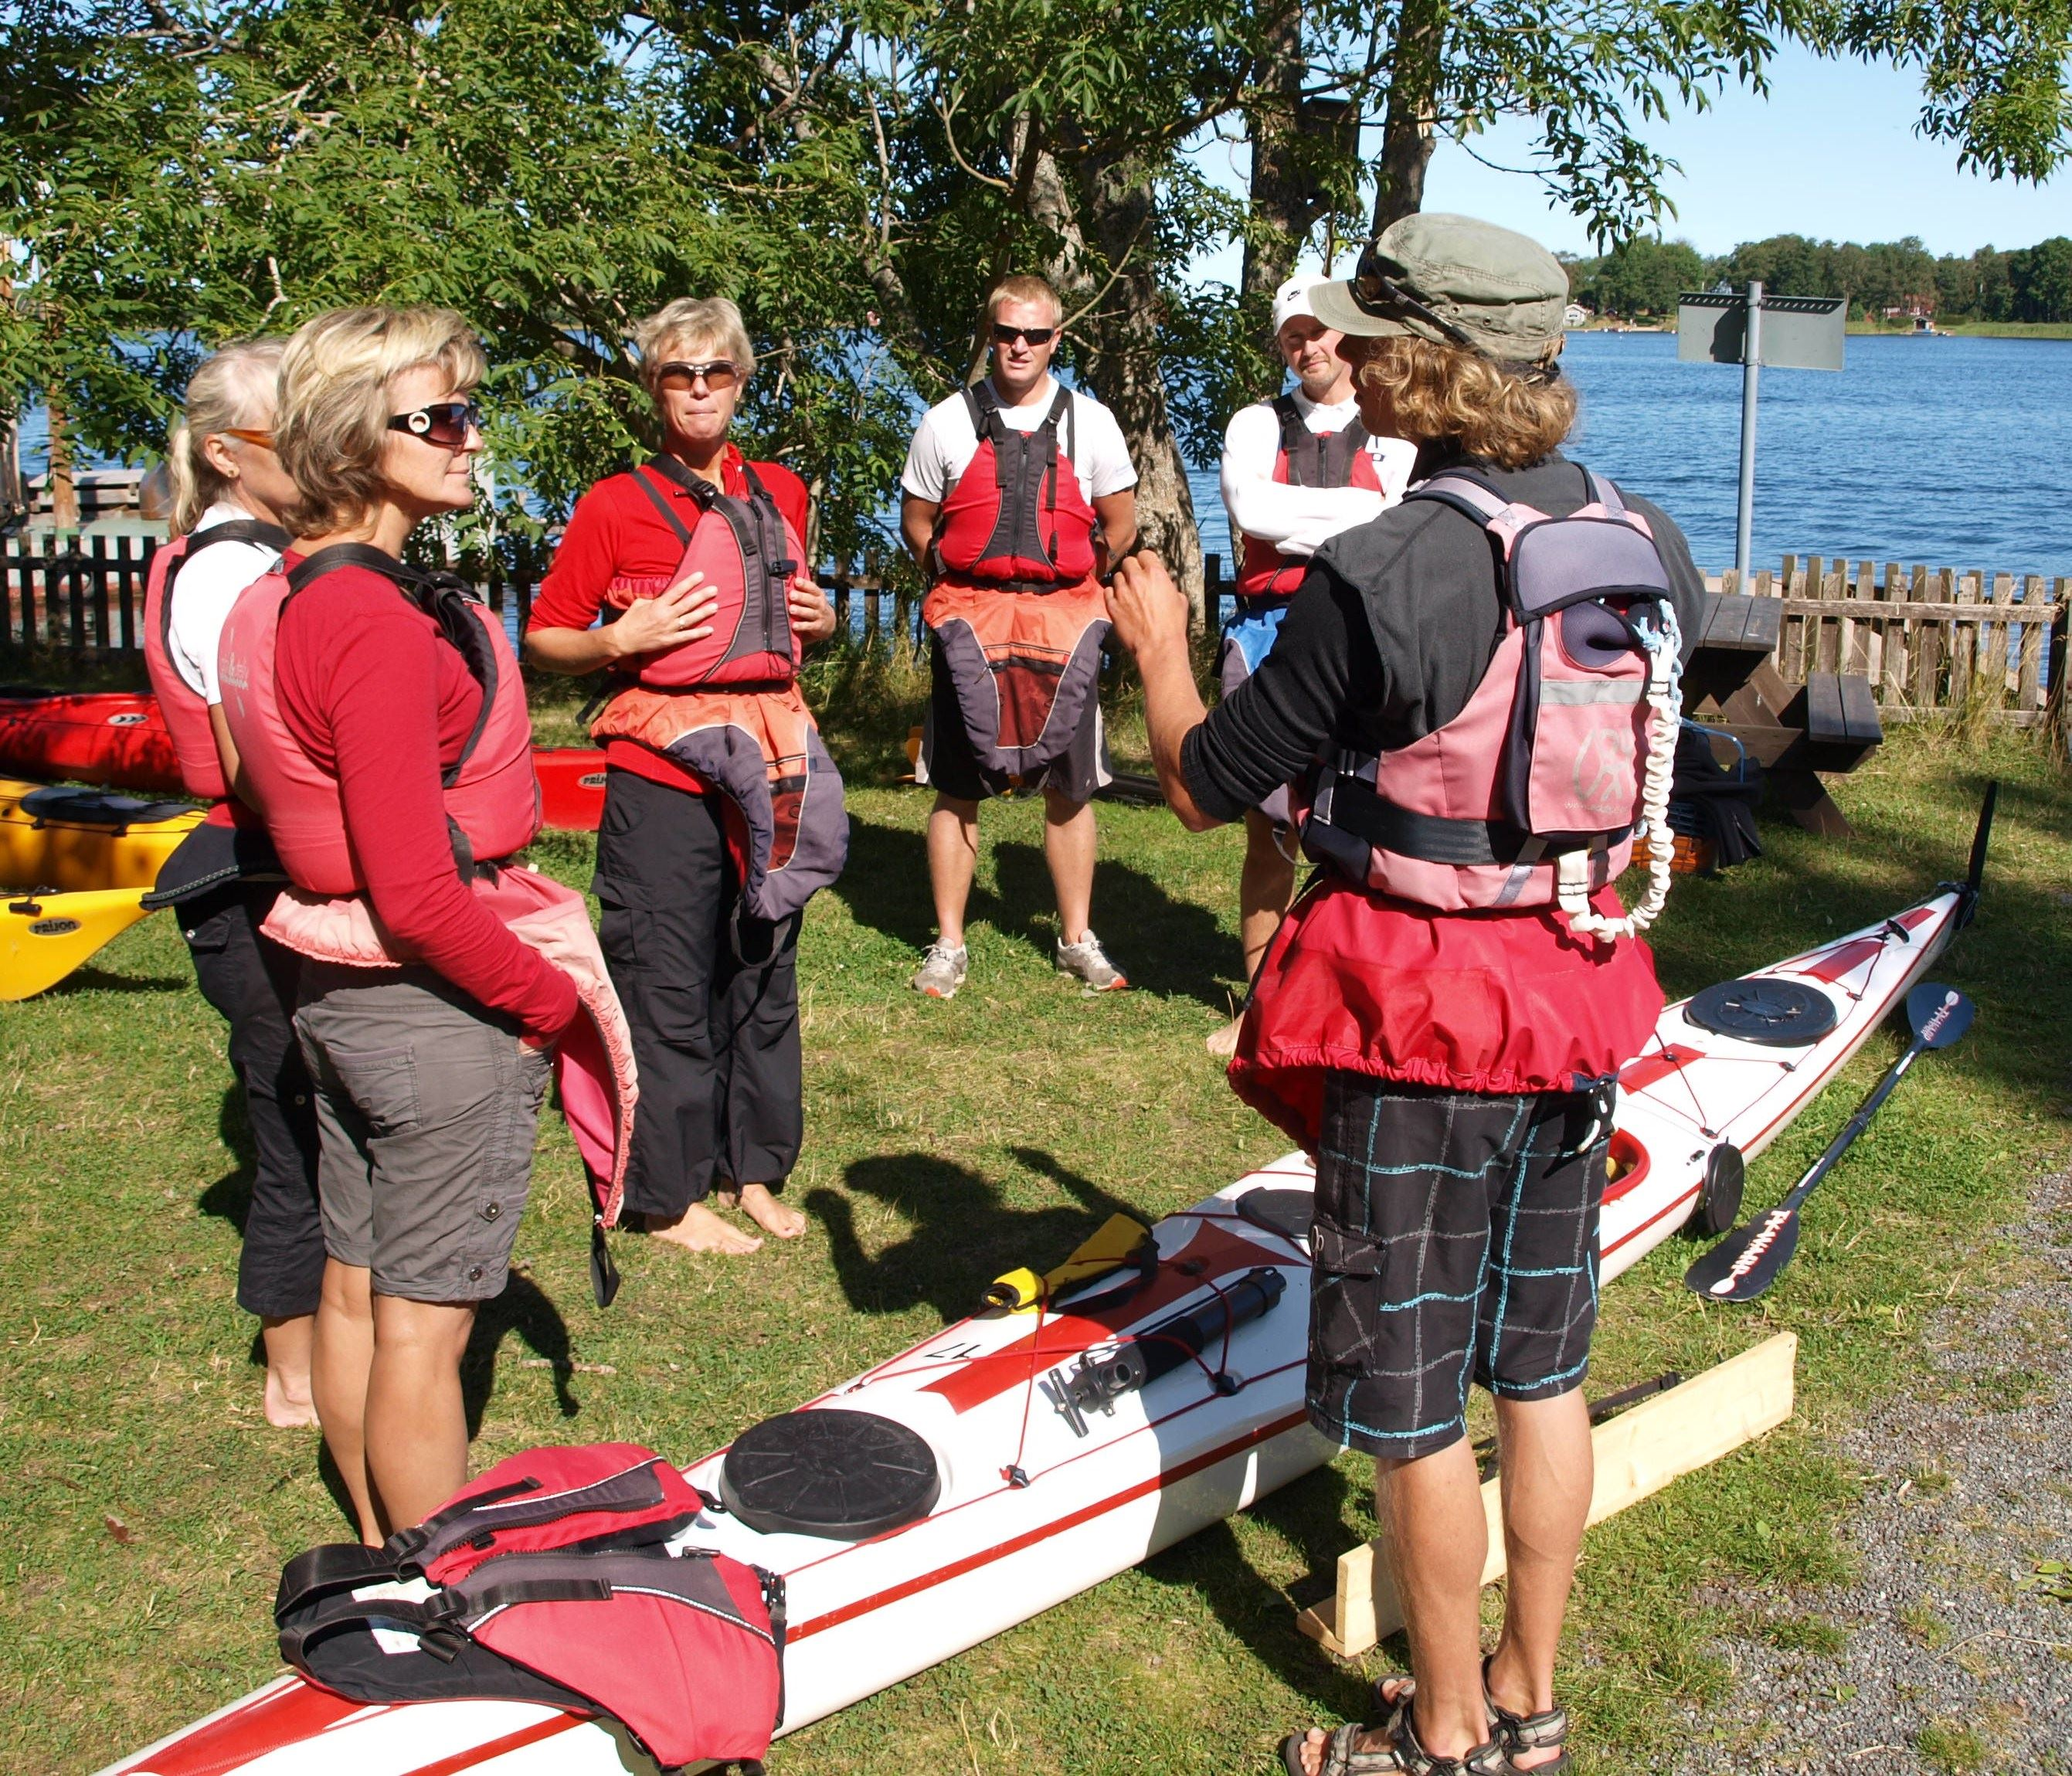 Seakayaking - First try course with Kajak och Uteliv